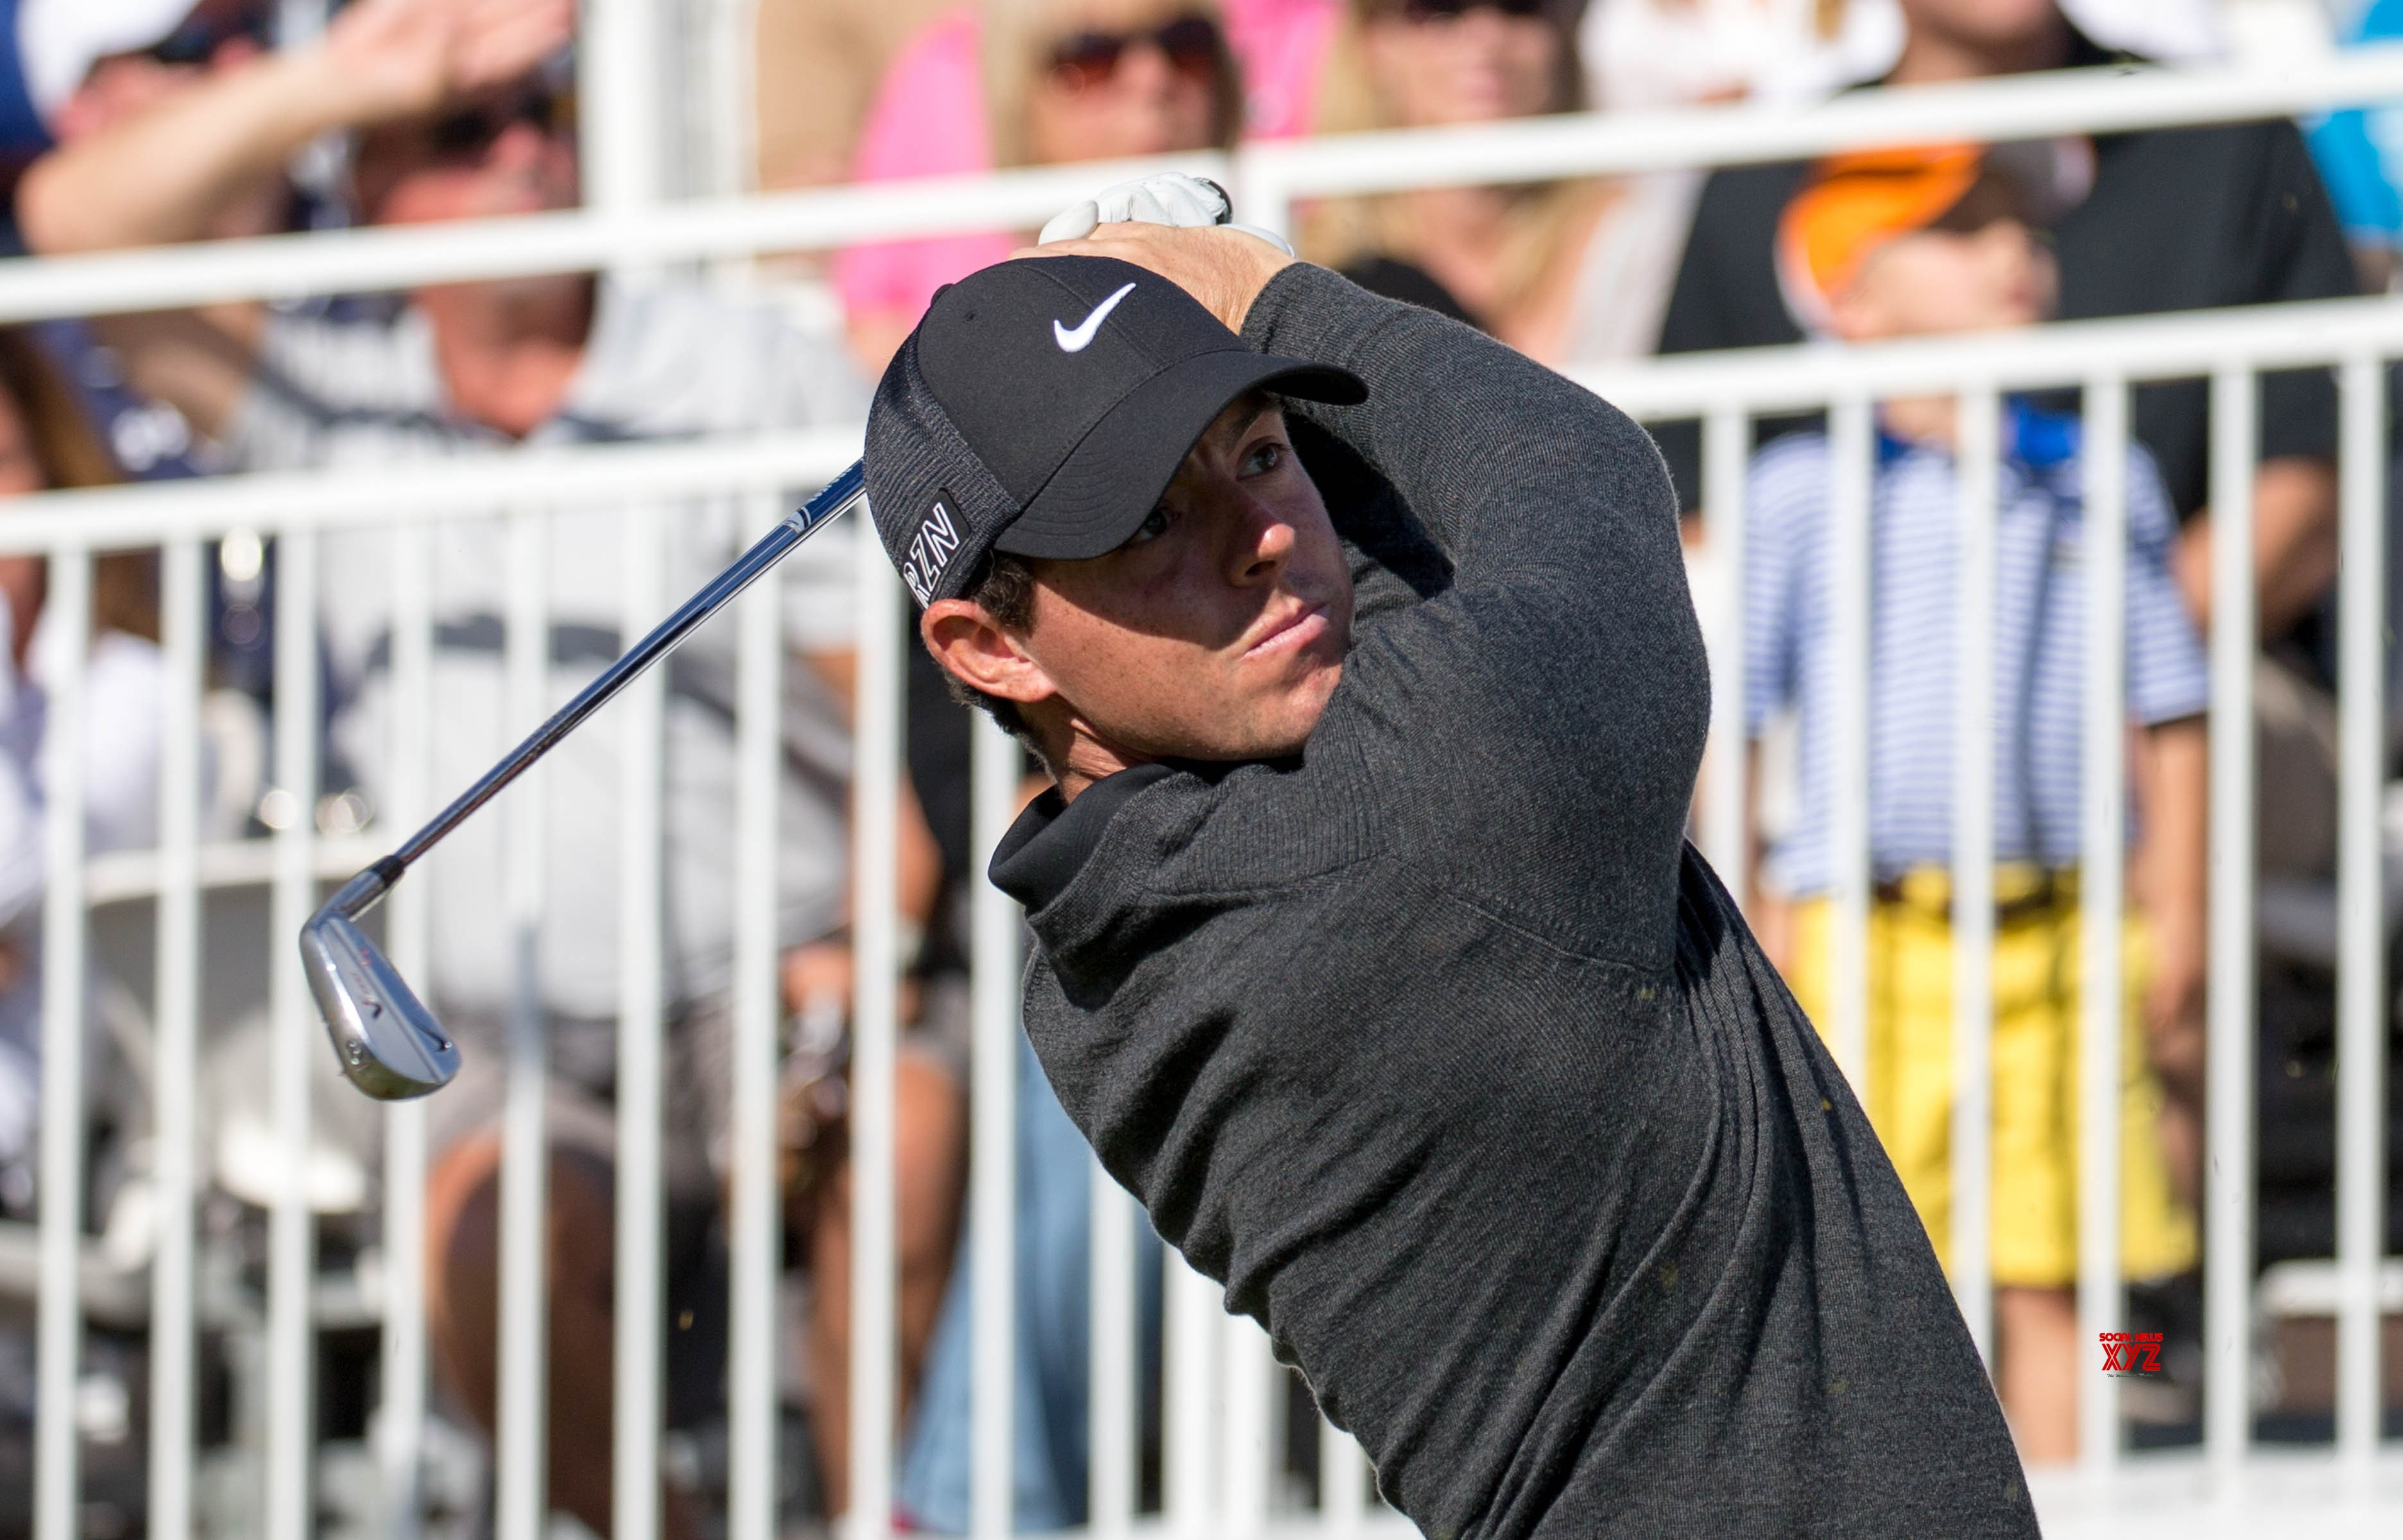 My hero growing up was Tiger Woods: Rory McIlroy